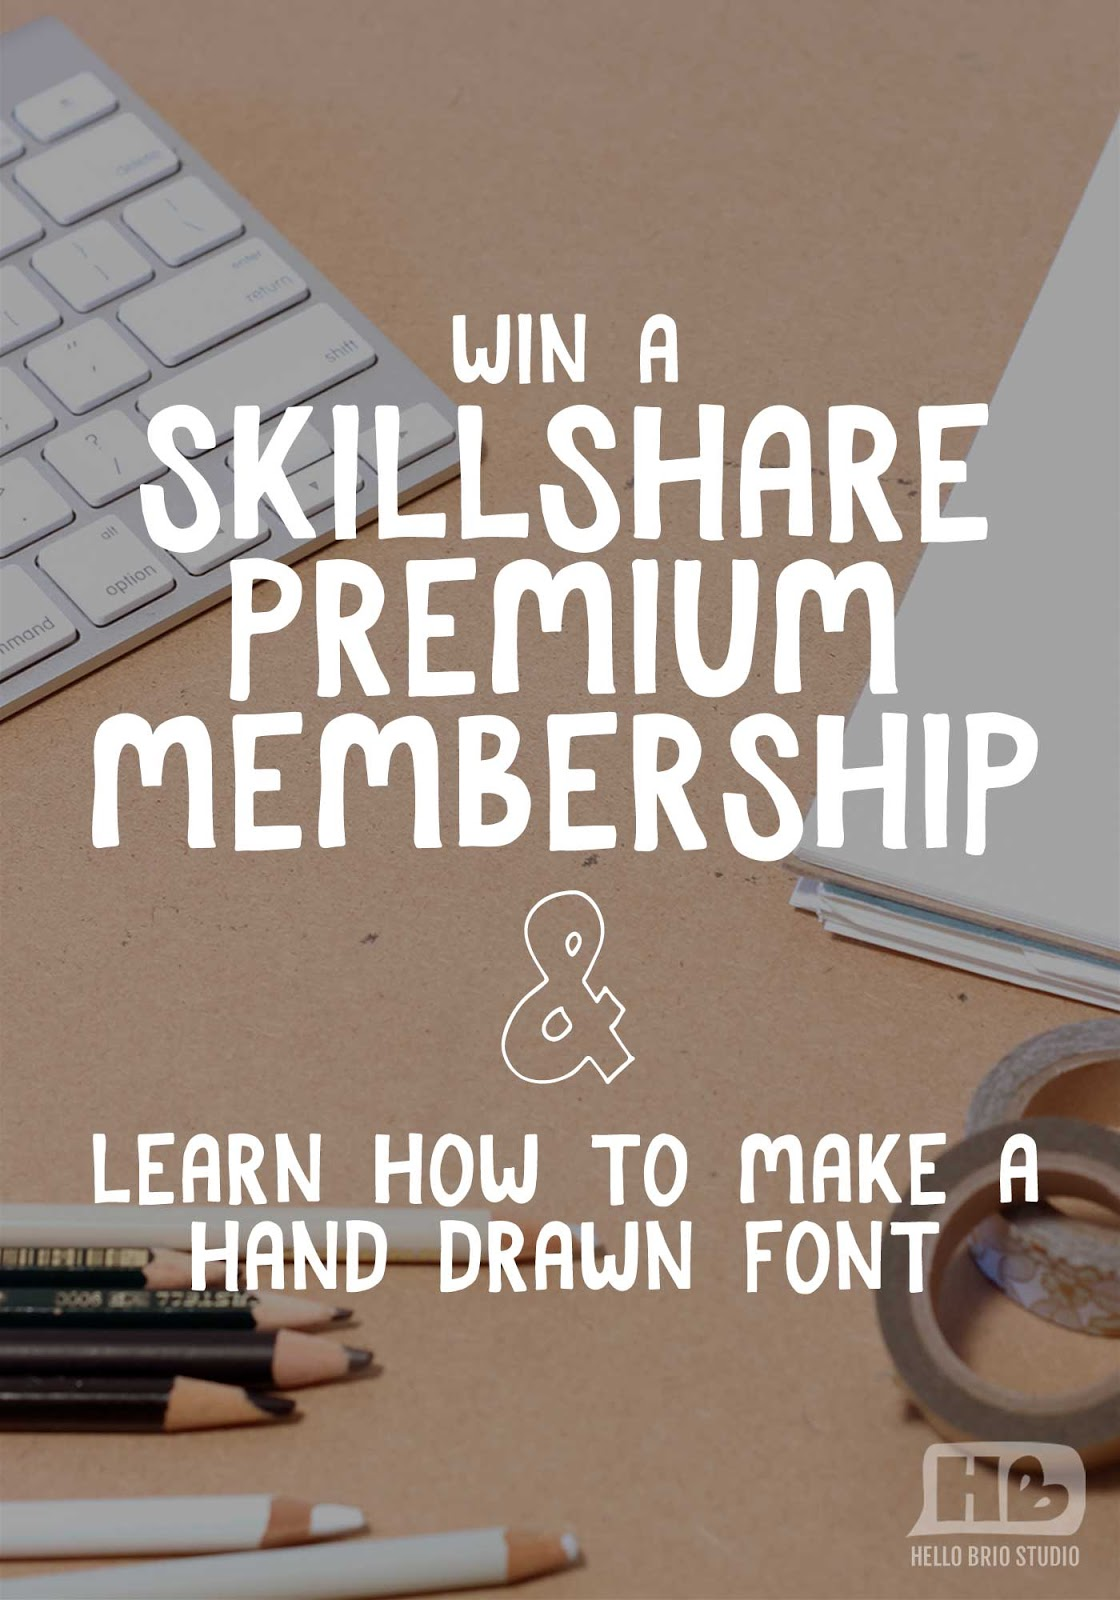 Win a one of four premium Skillshare memberships and learn how to make your own hand drawn font